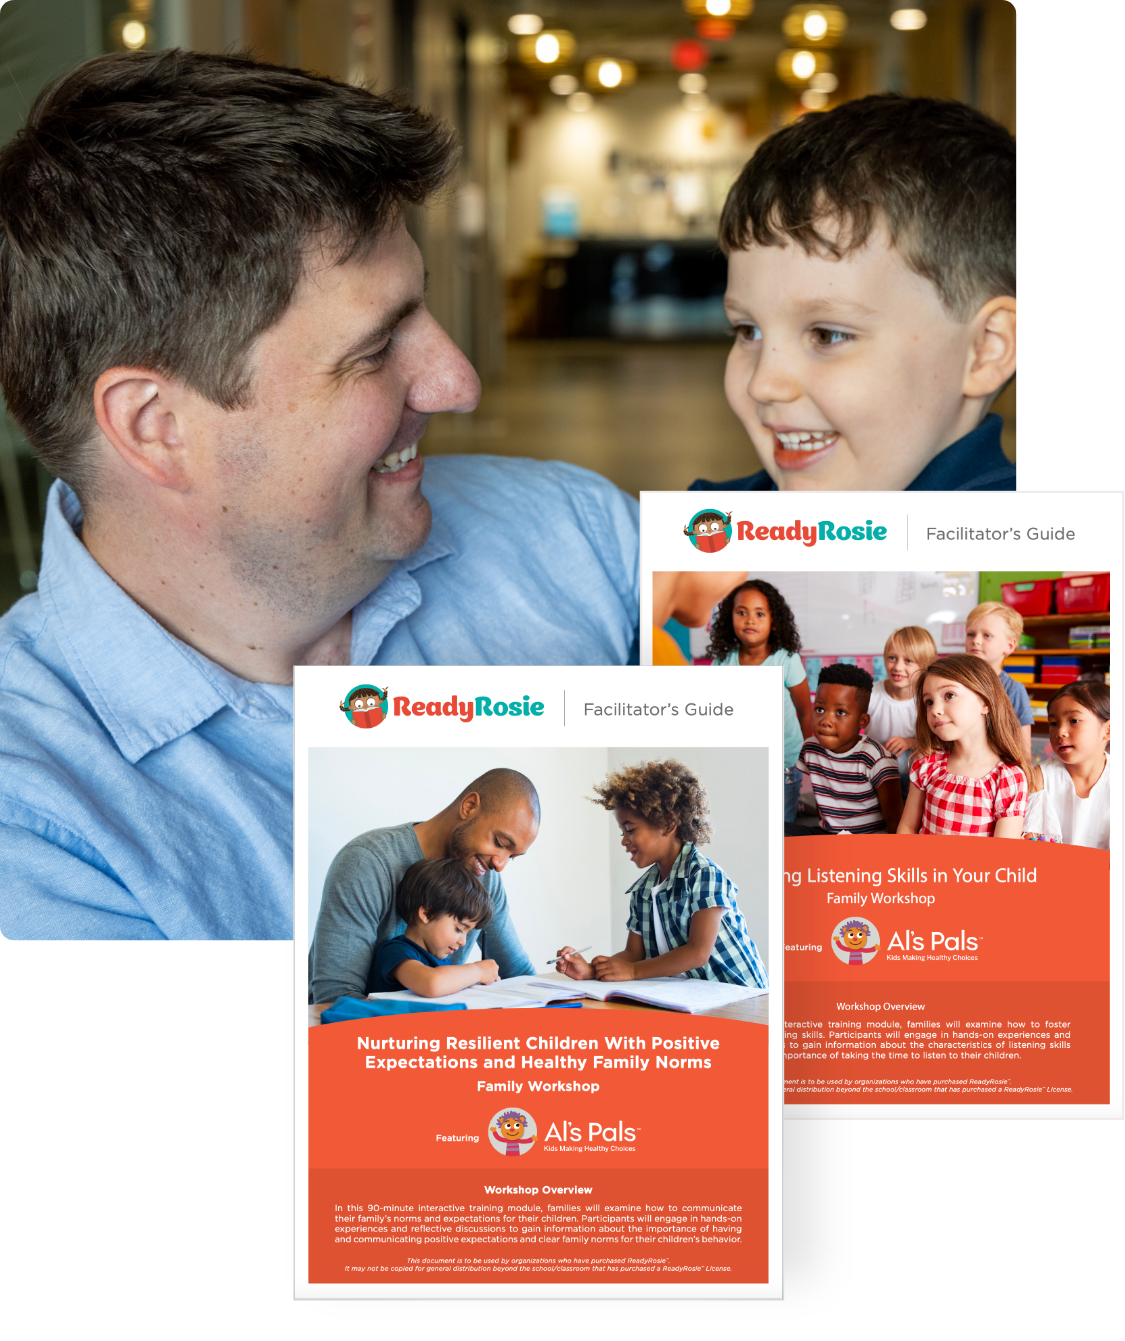 A father and son with screenshots from the ReadyRosie Family App